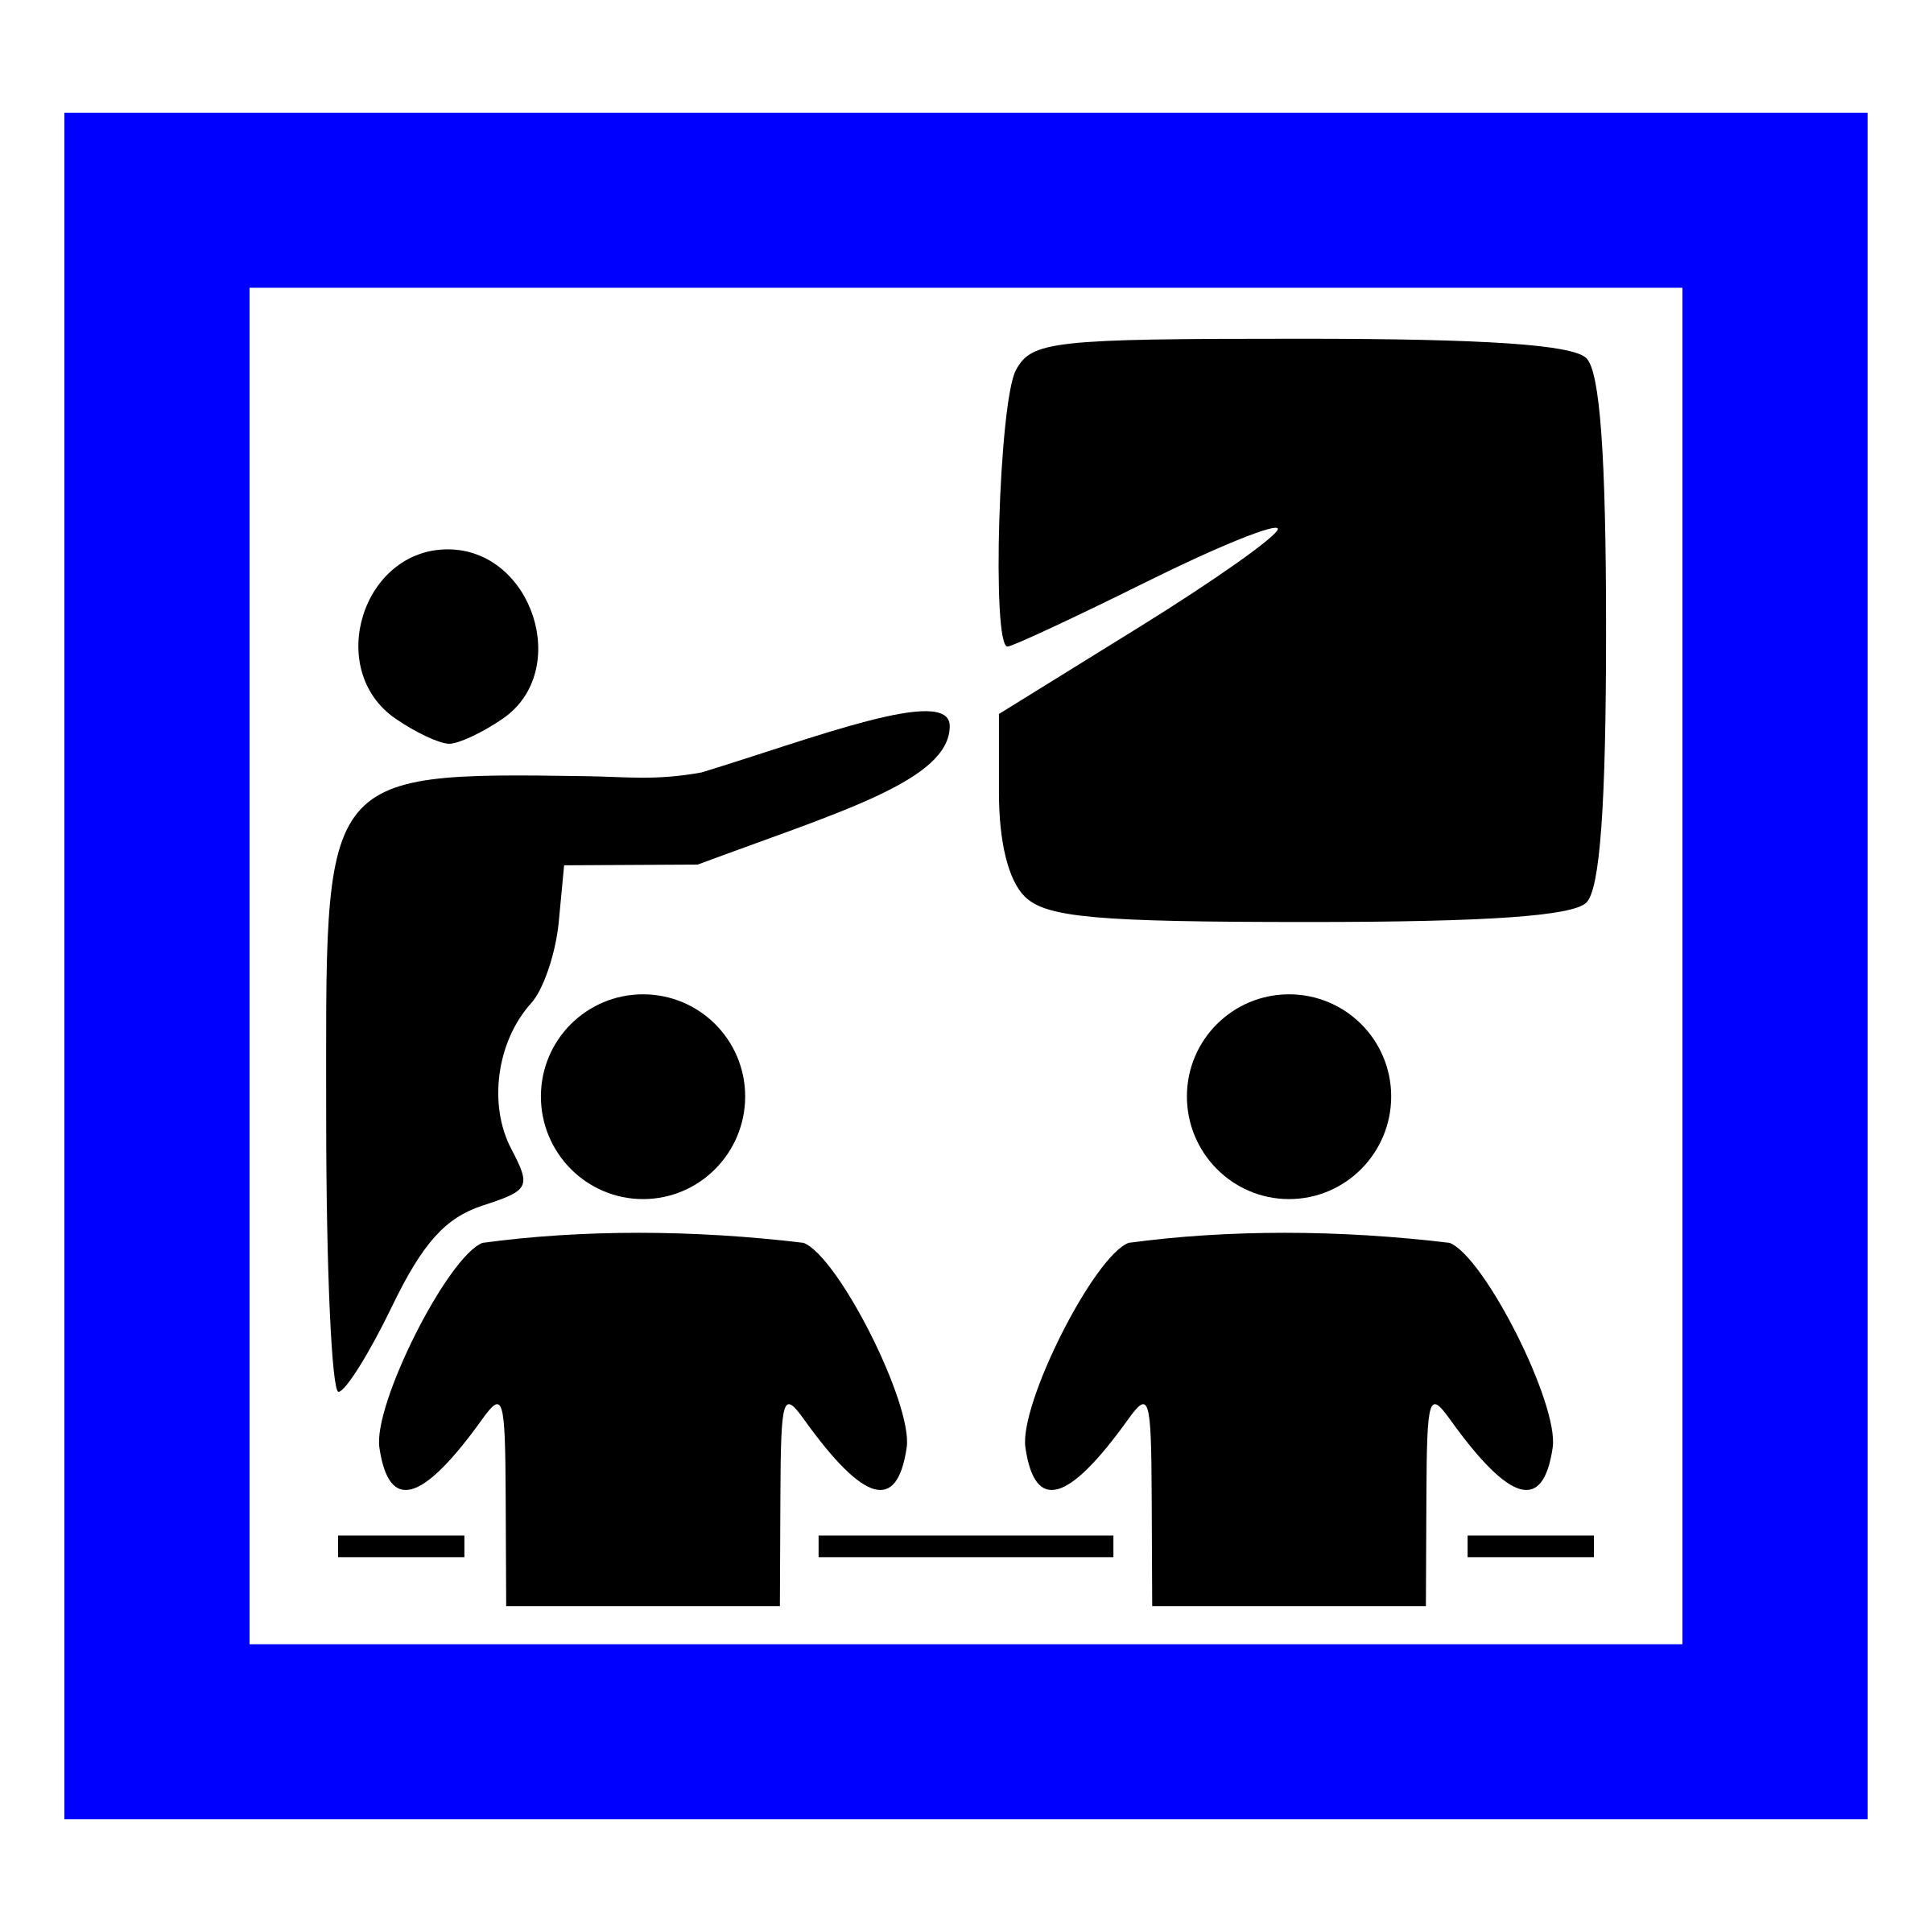 Training icons png free. Education clipart education icon